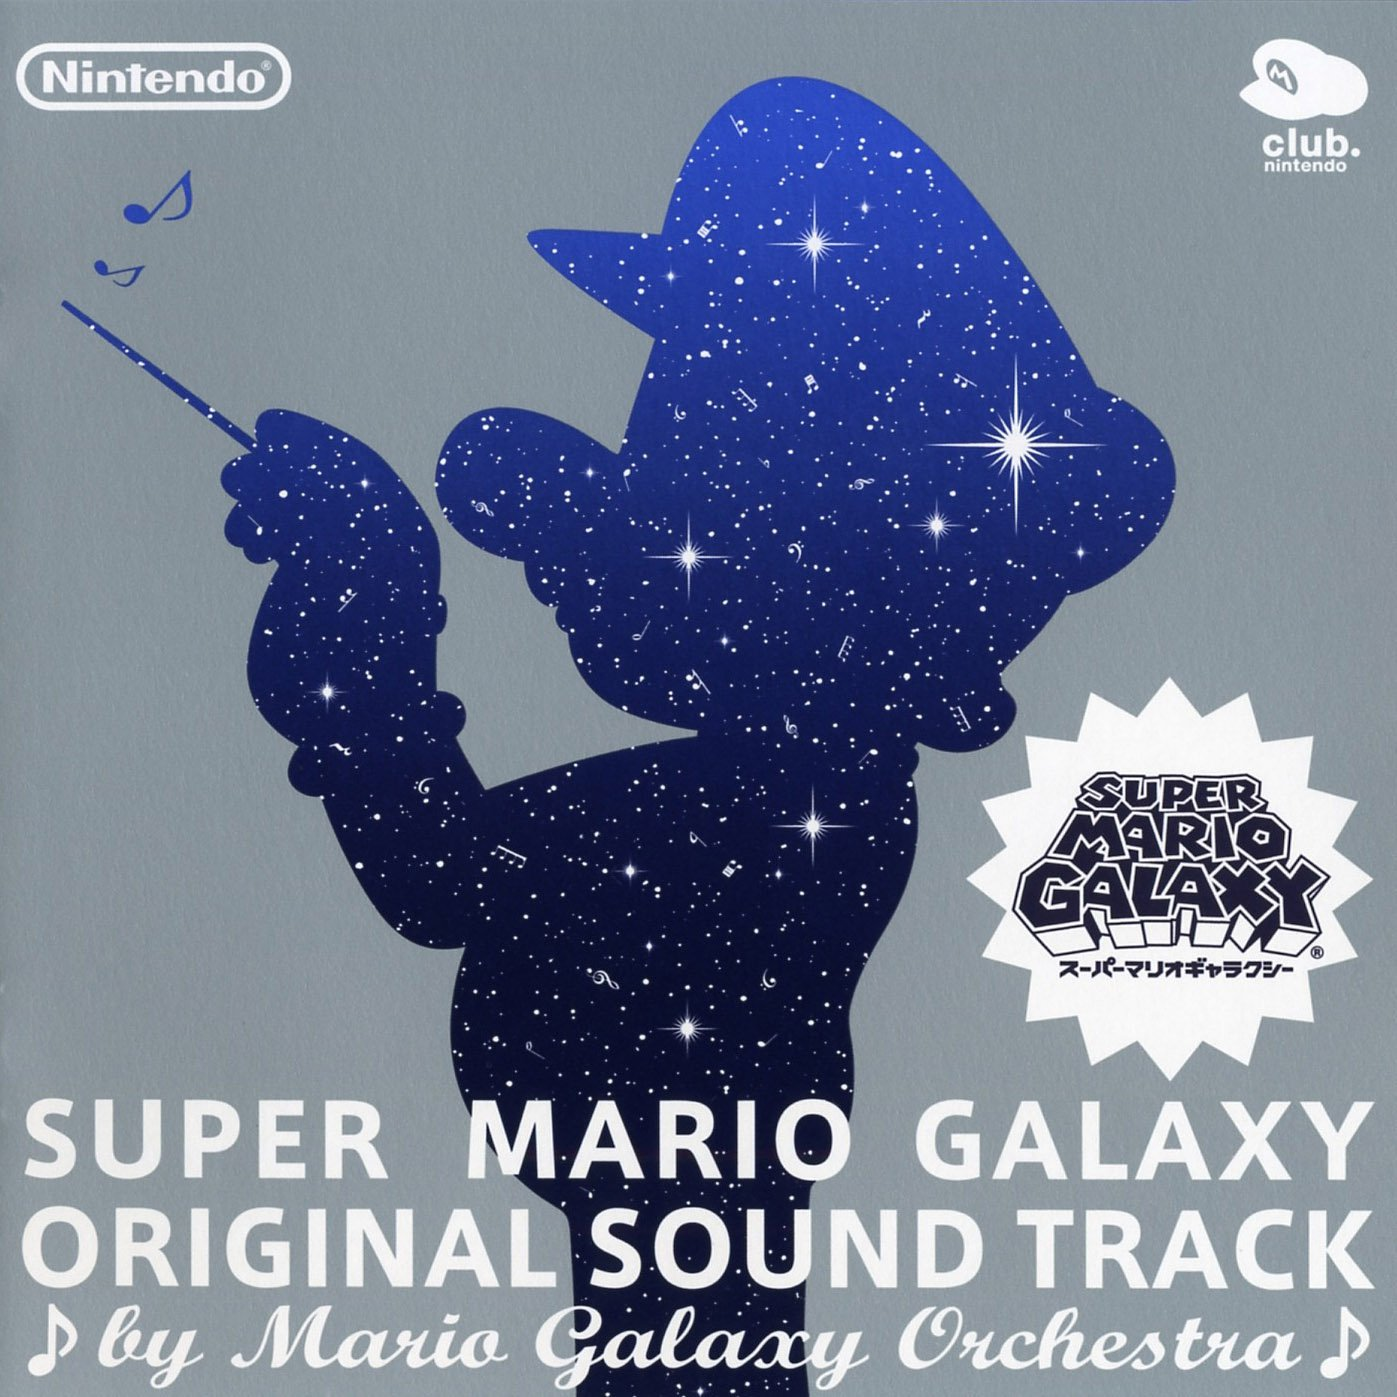 Super Mario Galaxy Soundtrack